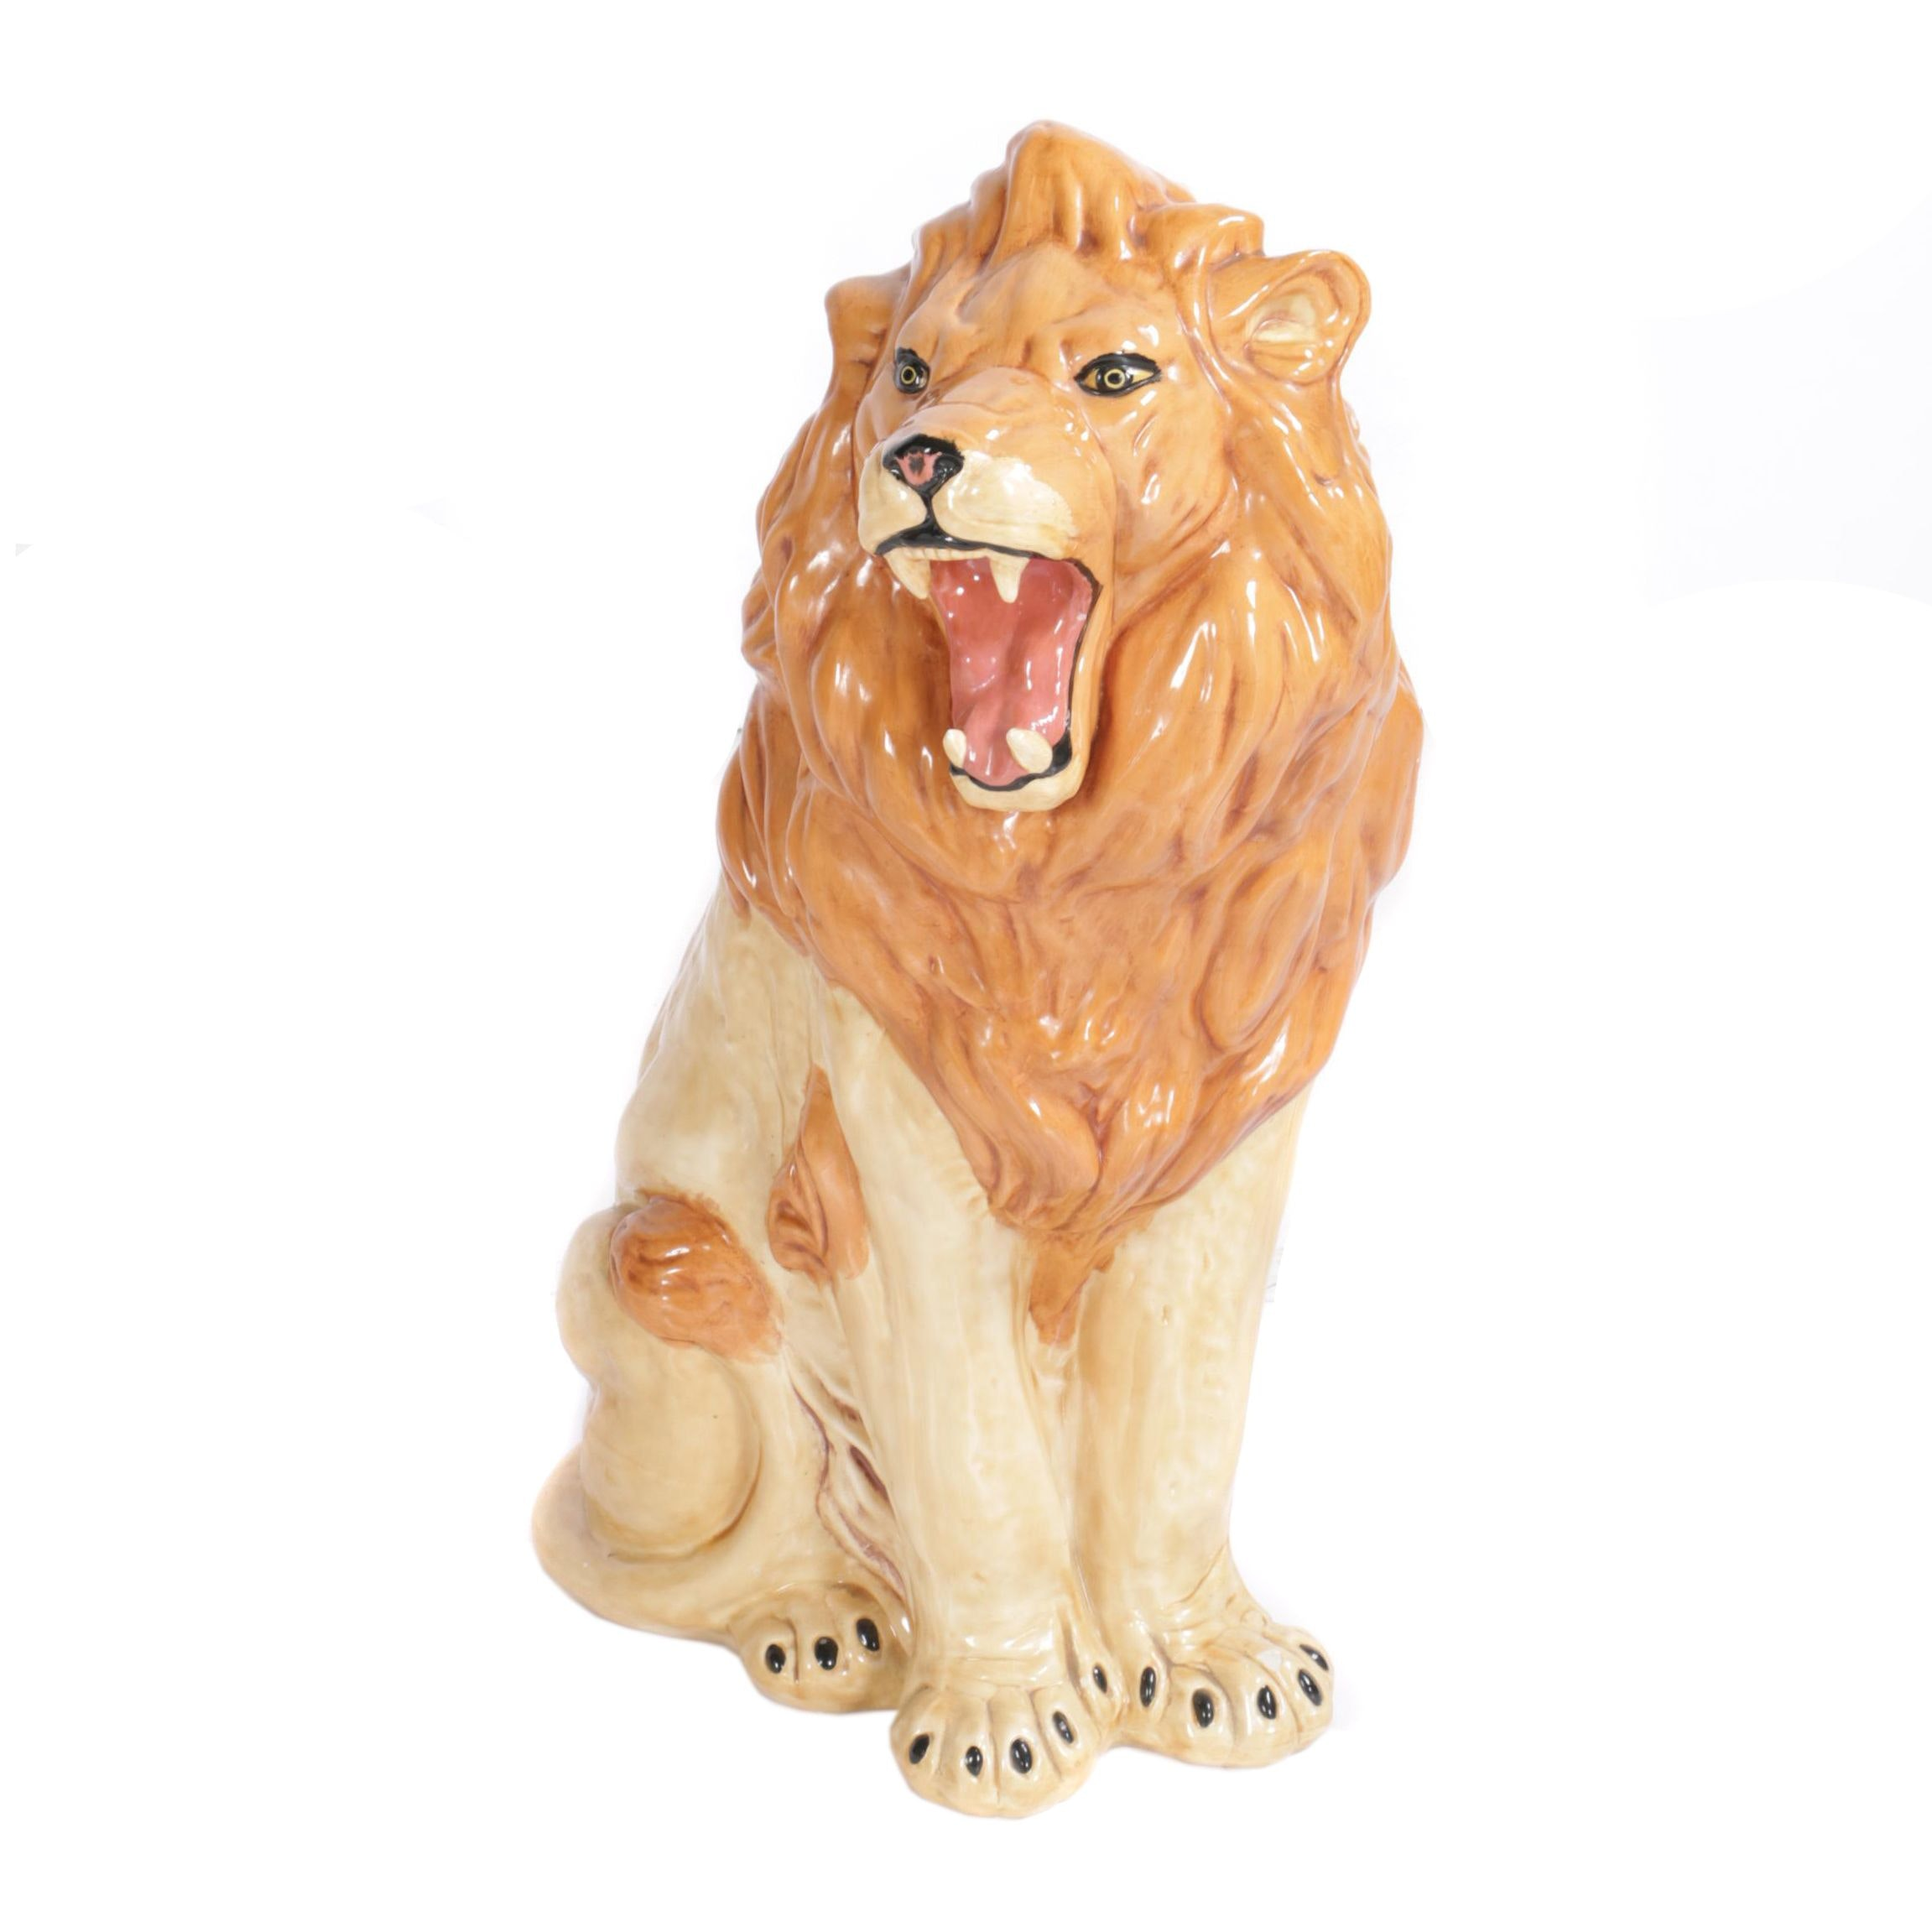 Seated Ceramic Lion Figurine by Crest Mold '73